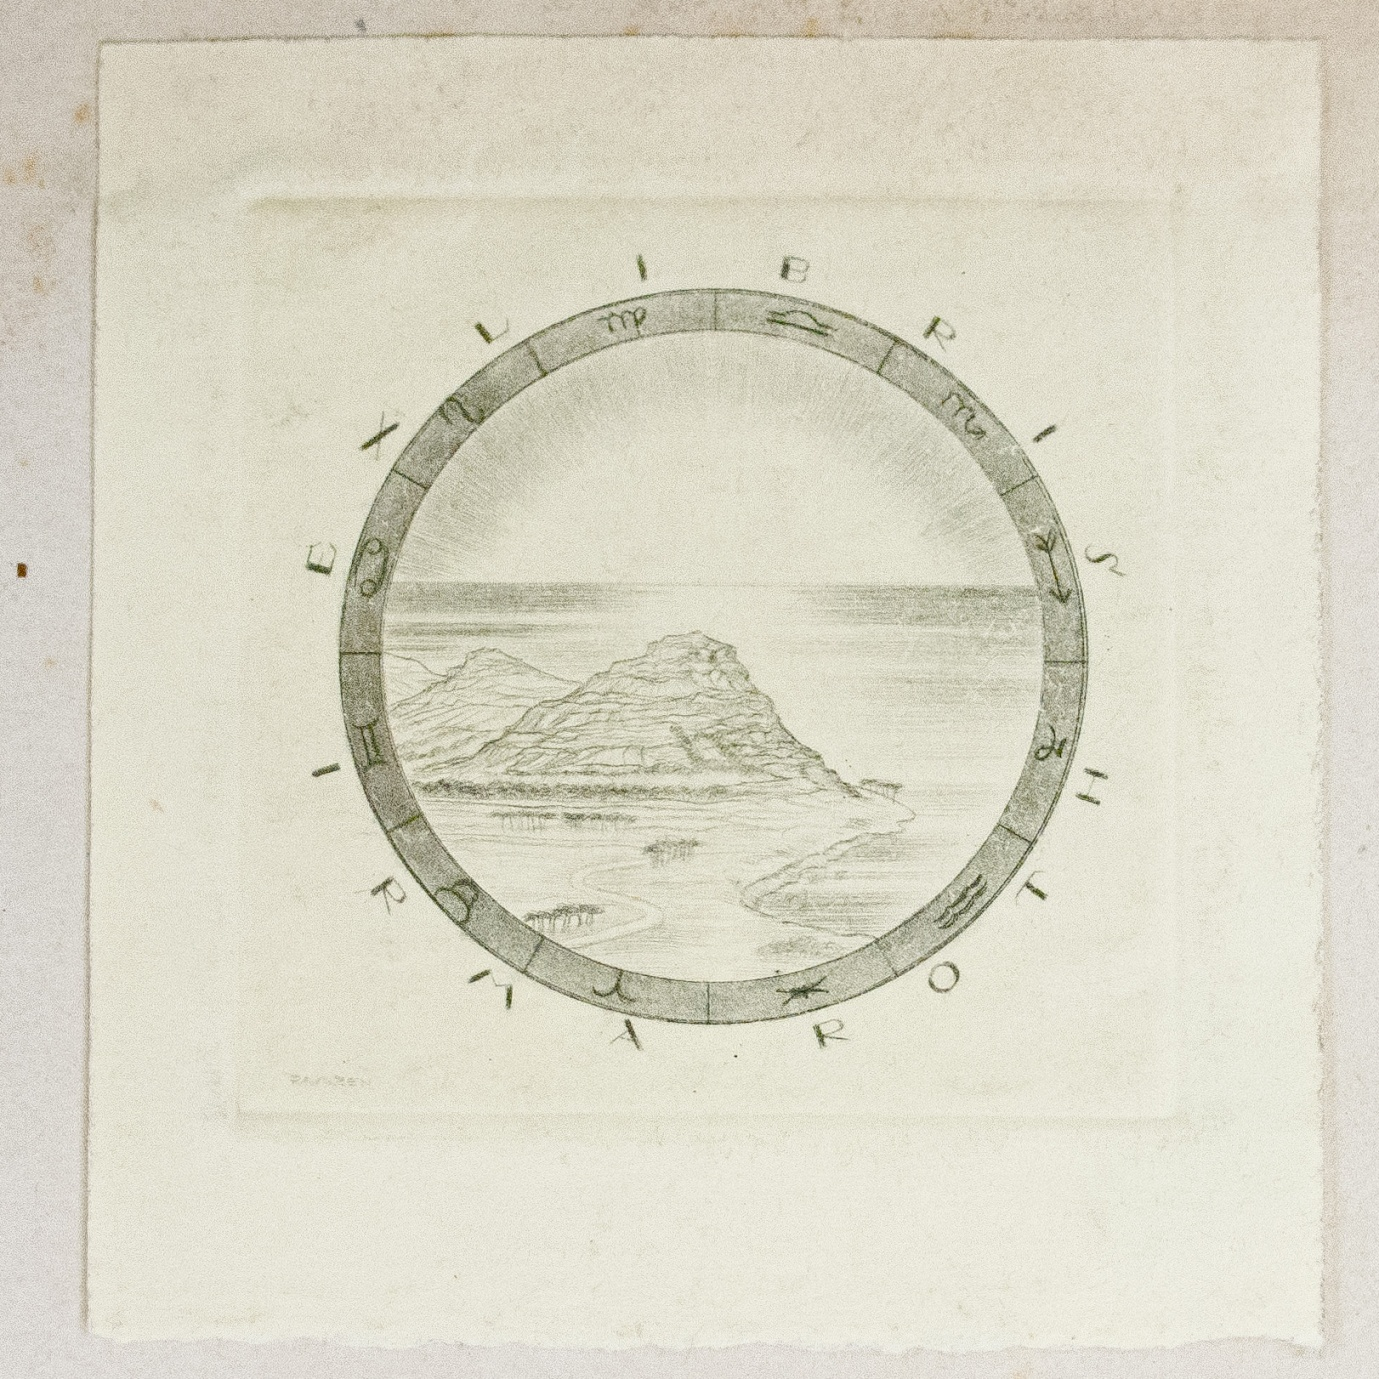 Irma Roth bookplate depicting a pyramid-like hill, surrounded by a circular band of symbols